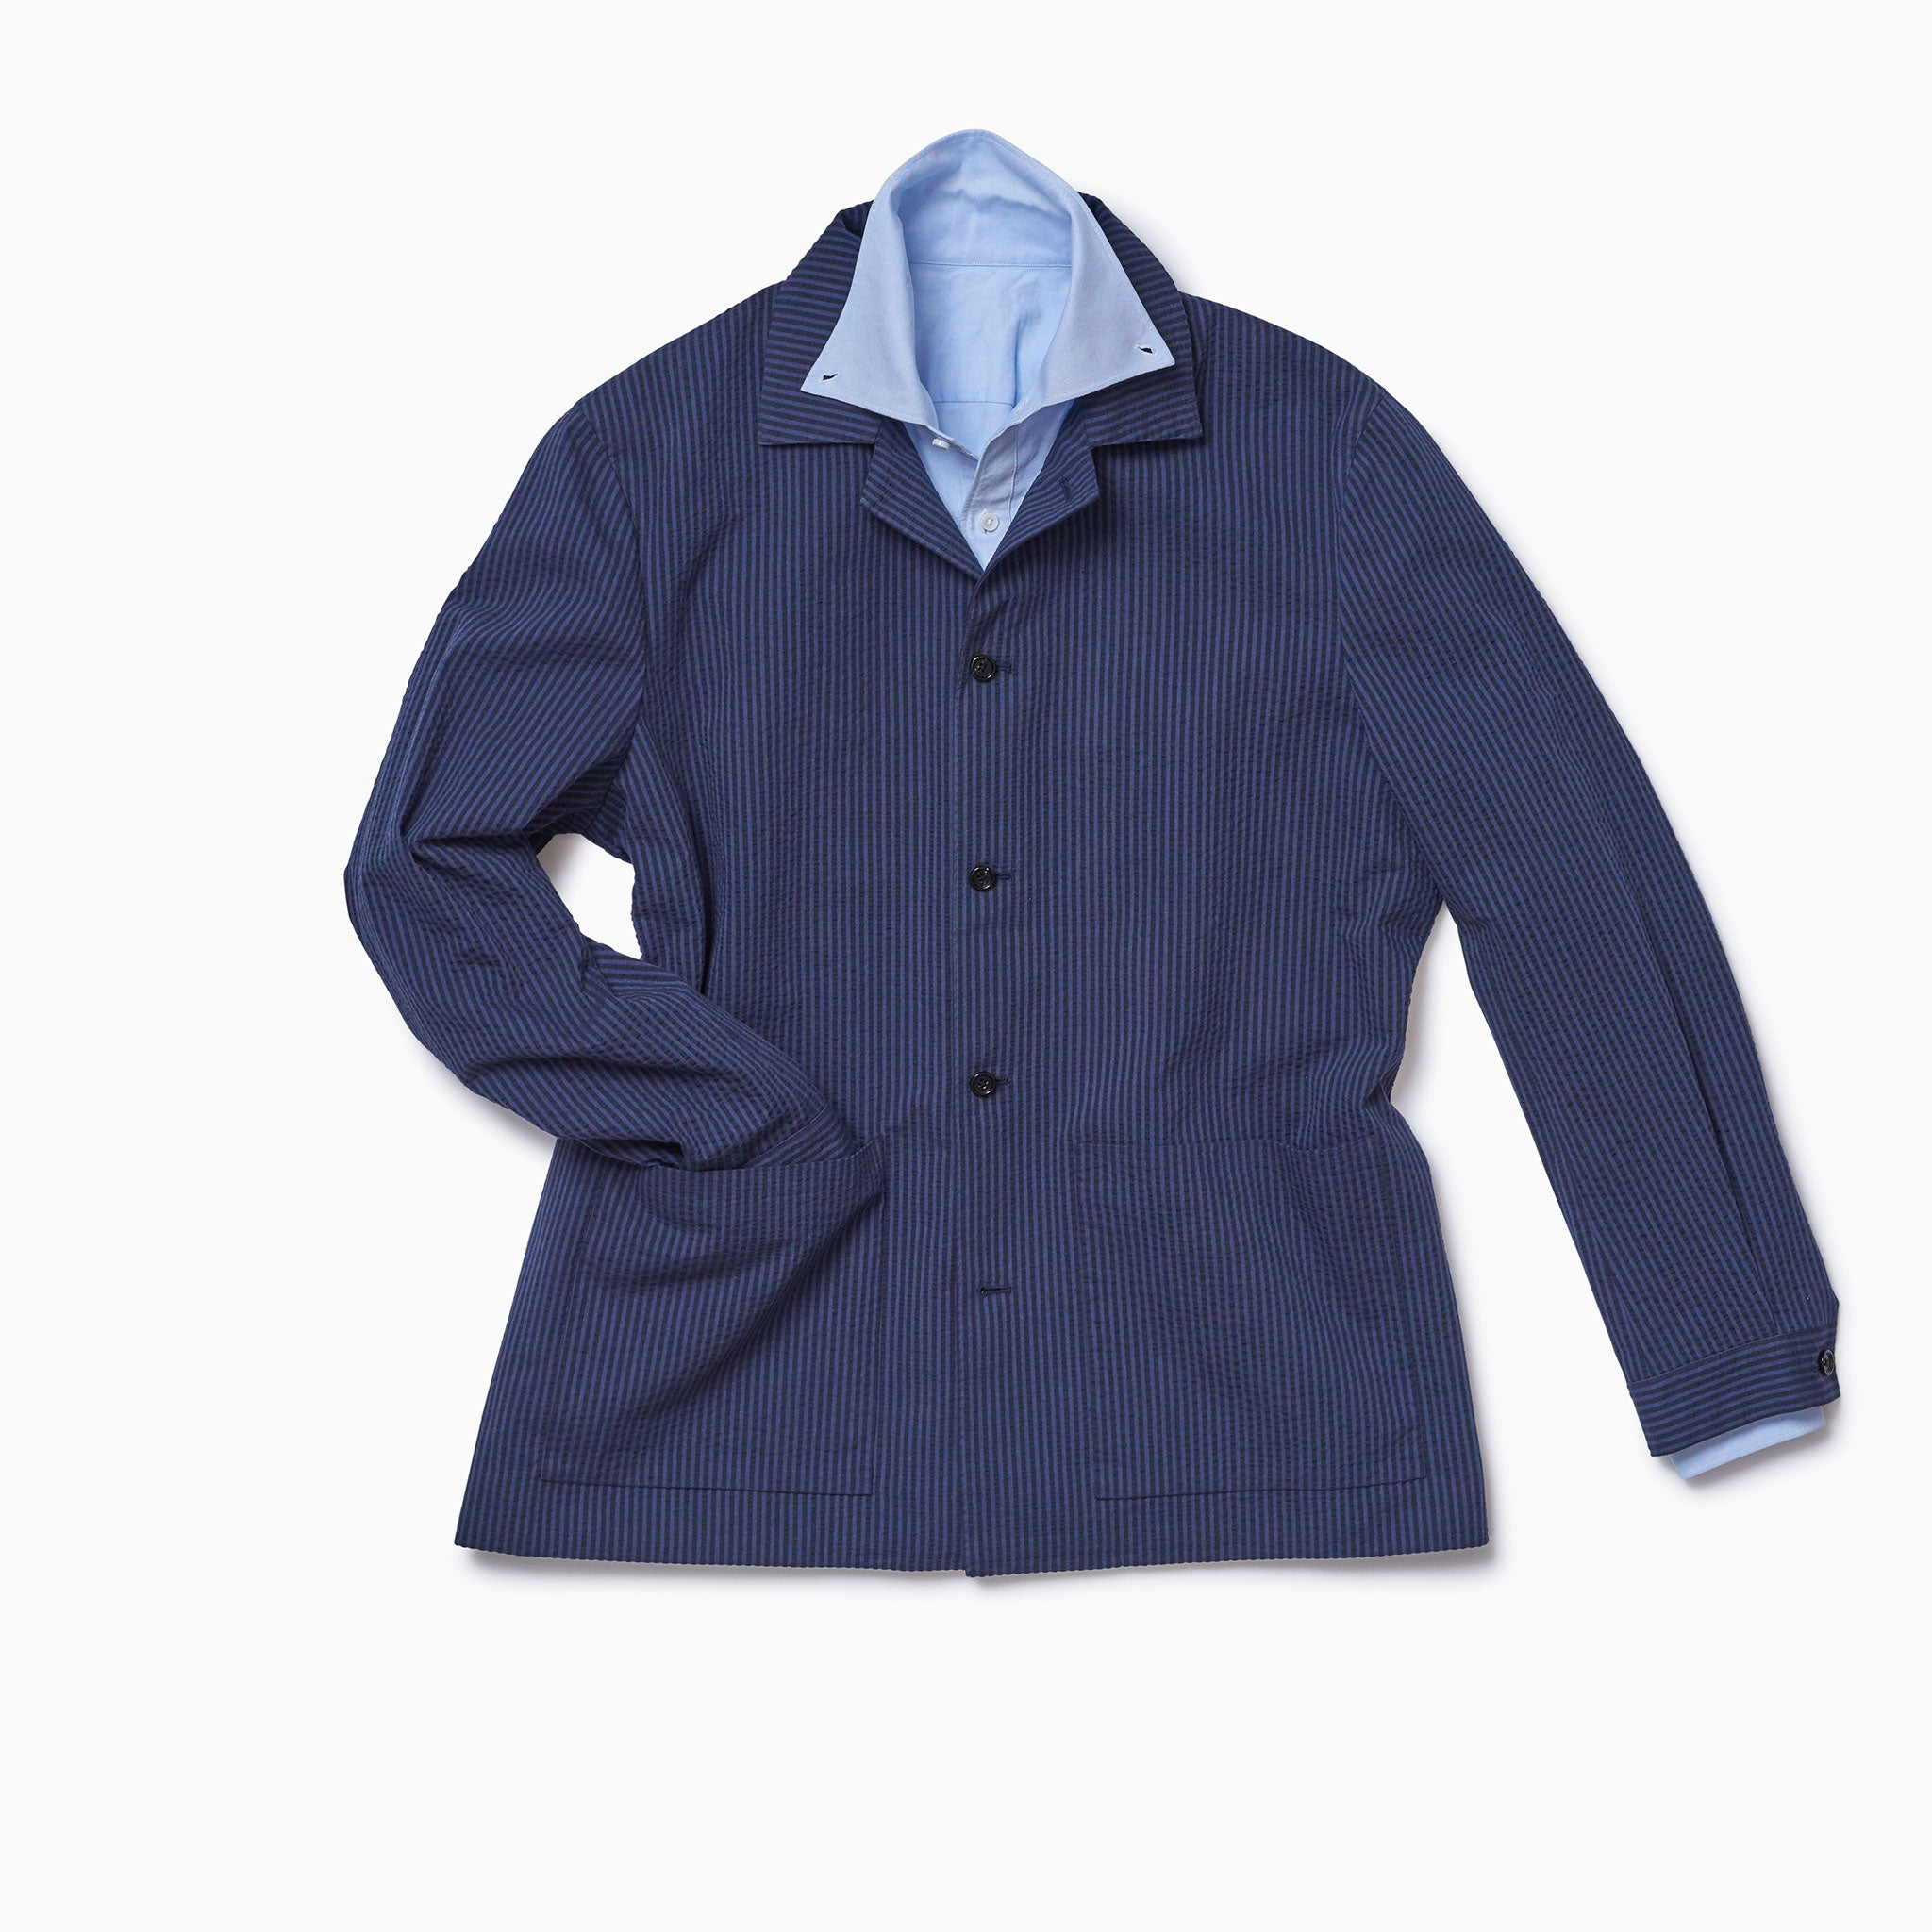 Navy on Navy Seersucker Lined Shirt Jacket